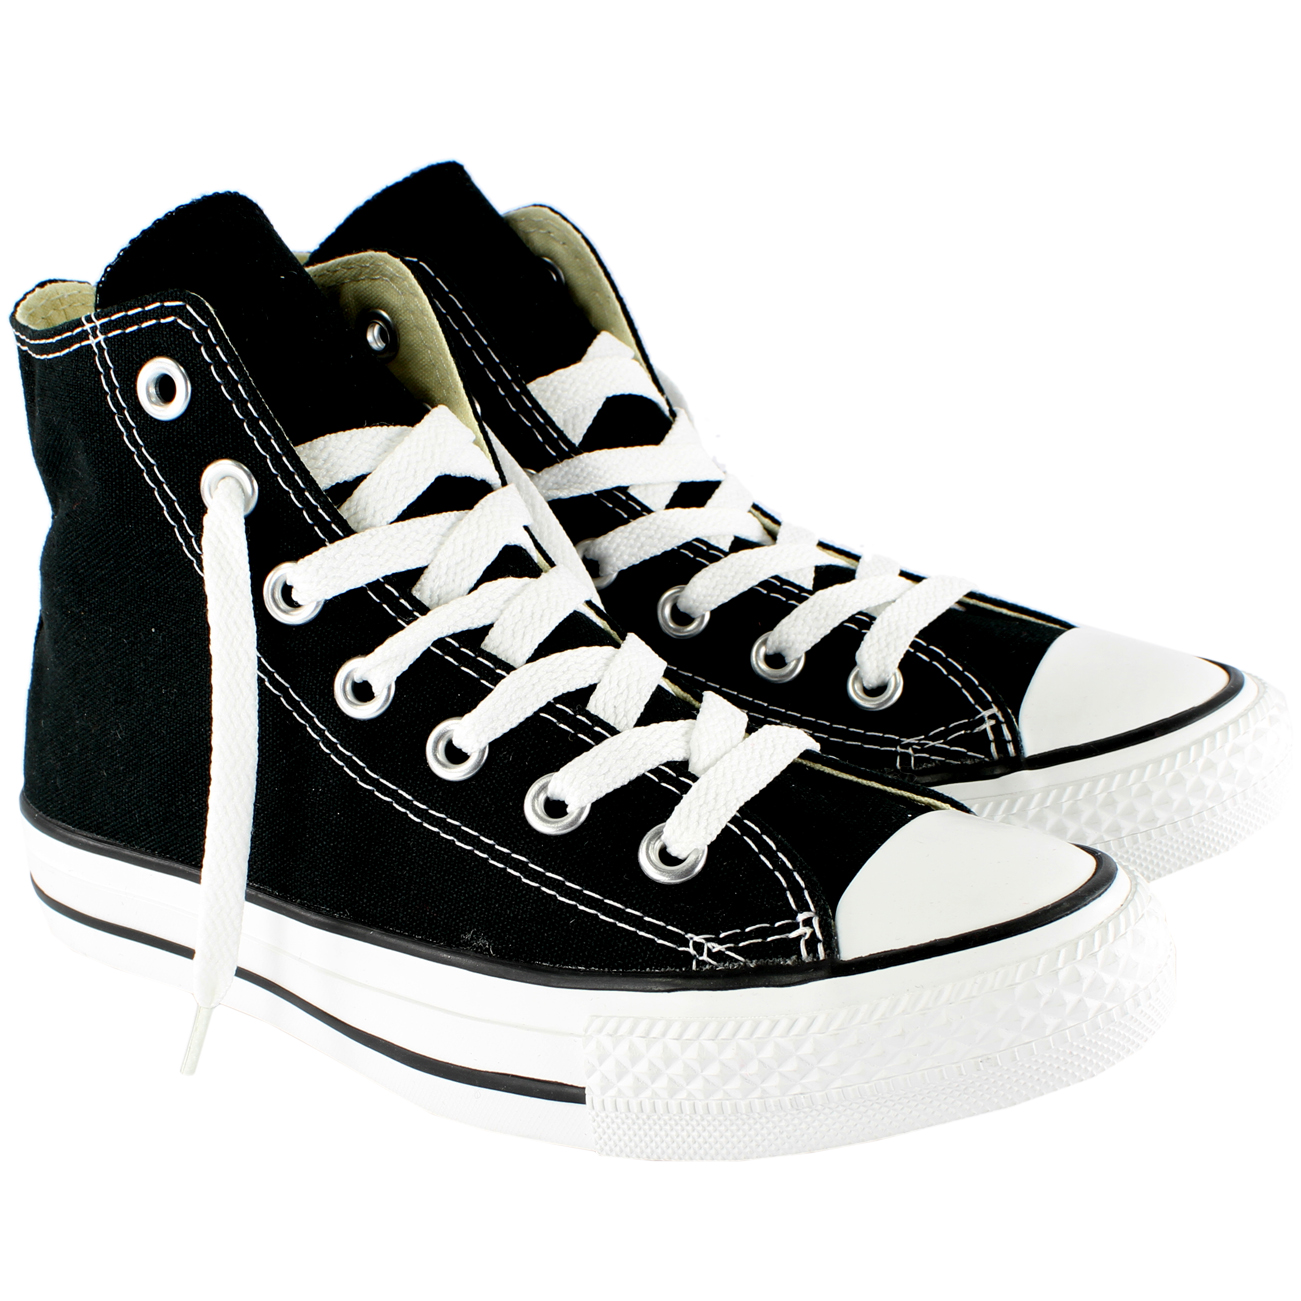 Converse Men's Trainers Style 111116 Black